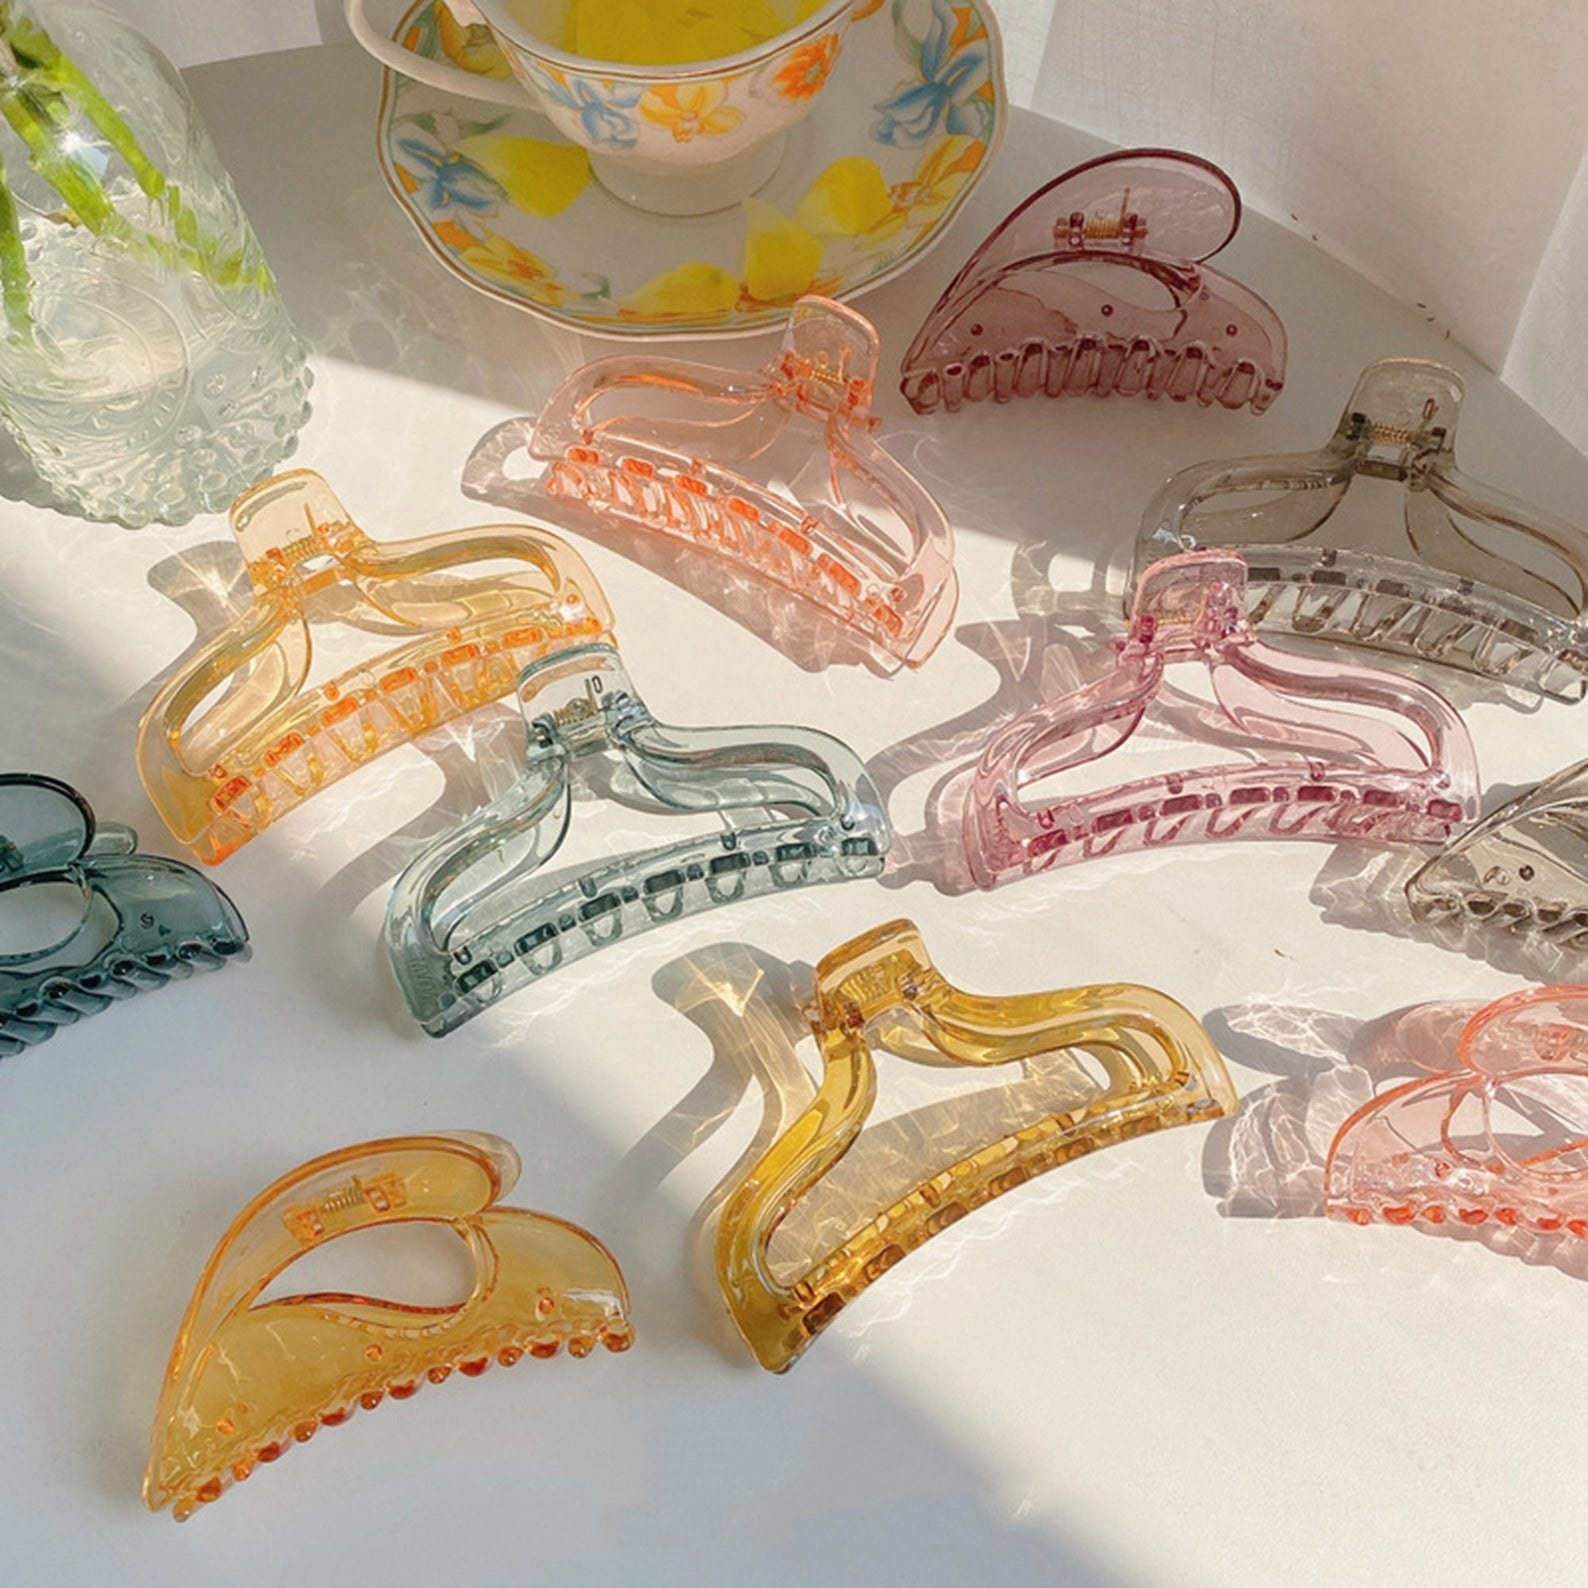 Numerous resin hair clips in different shapes and colors lay on a table. The resin is translucent and the clips are essentially thick frames as the middle is cut out